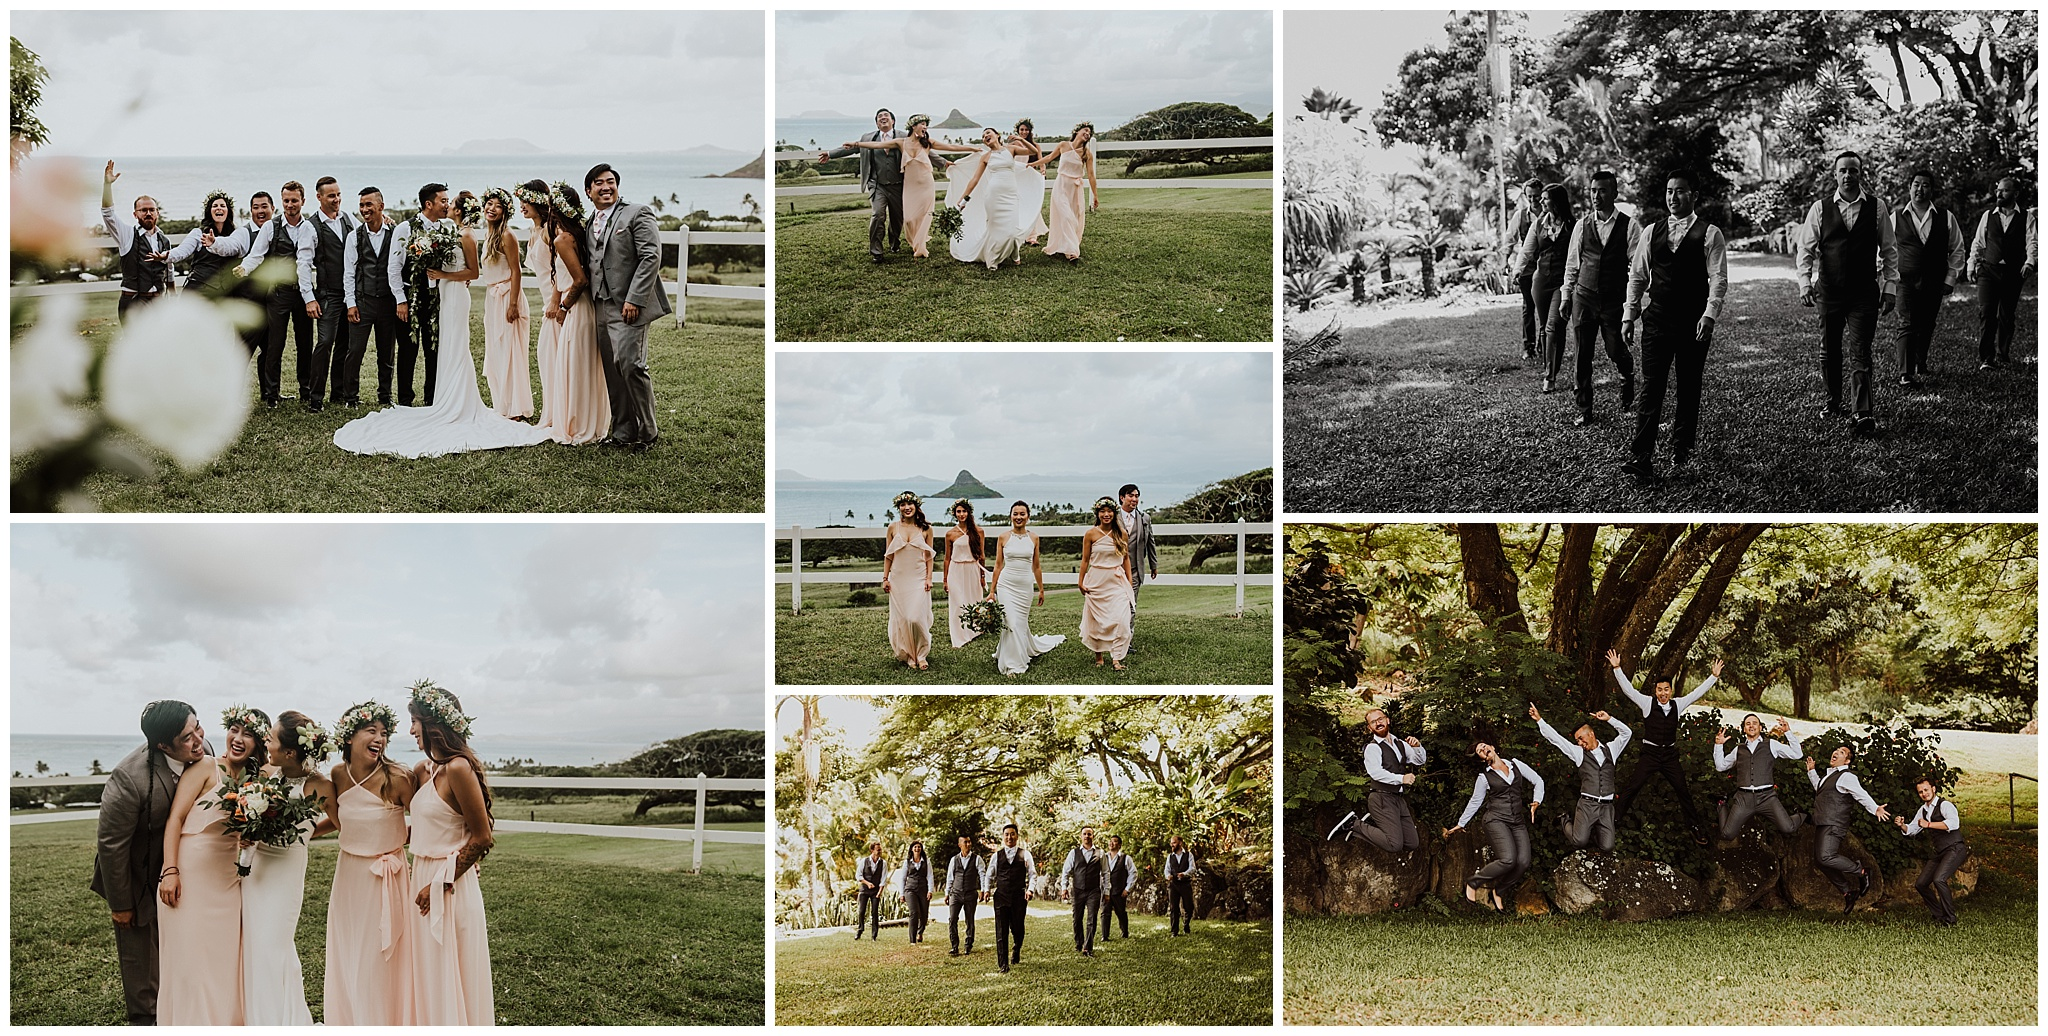 kualoa_ranch_wedding4.jpg